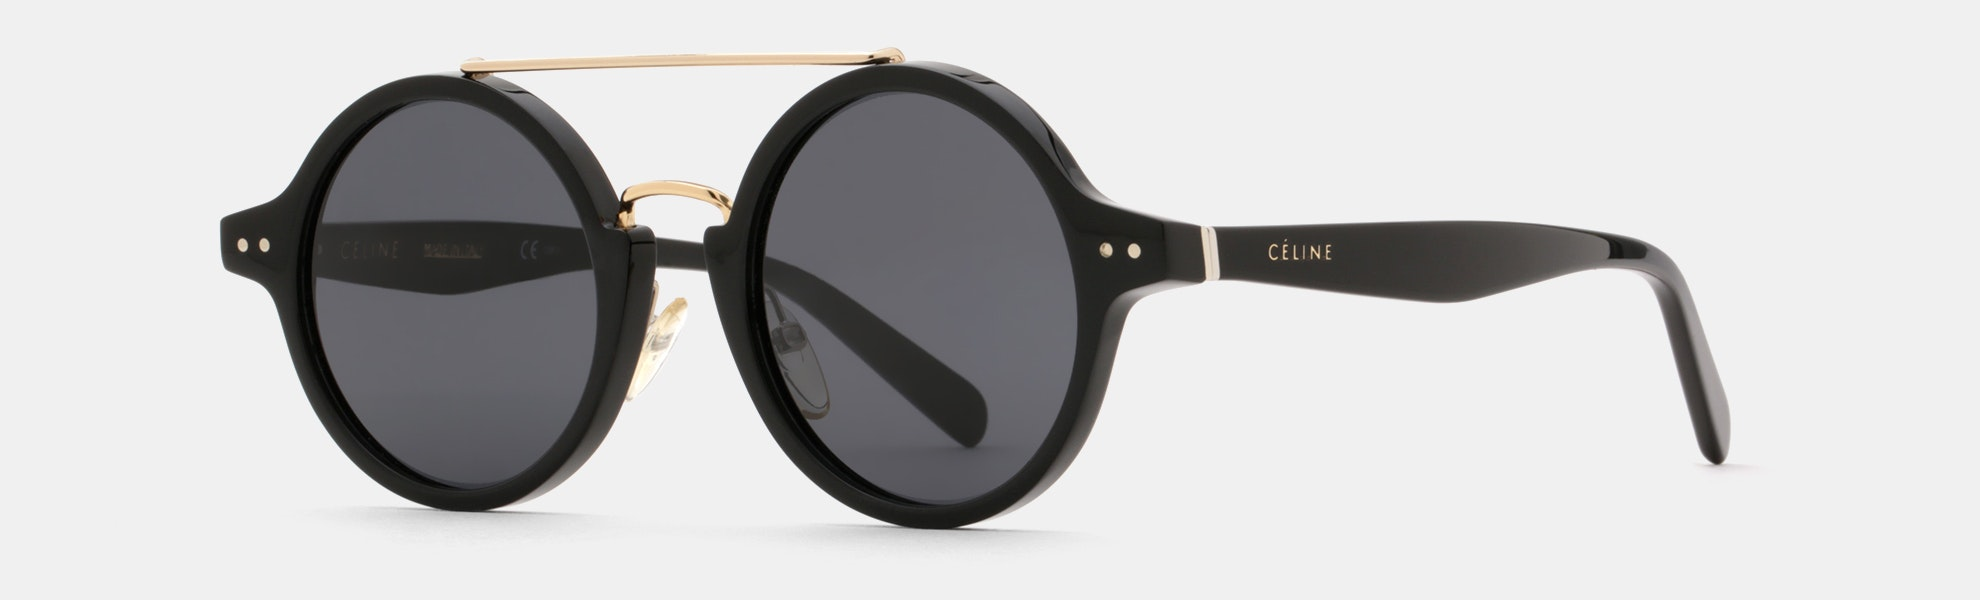 Céline CL41442 Sunglasses